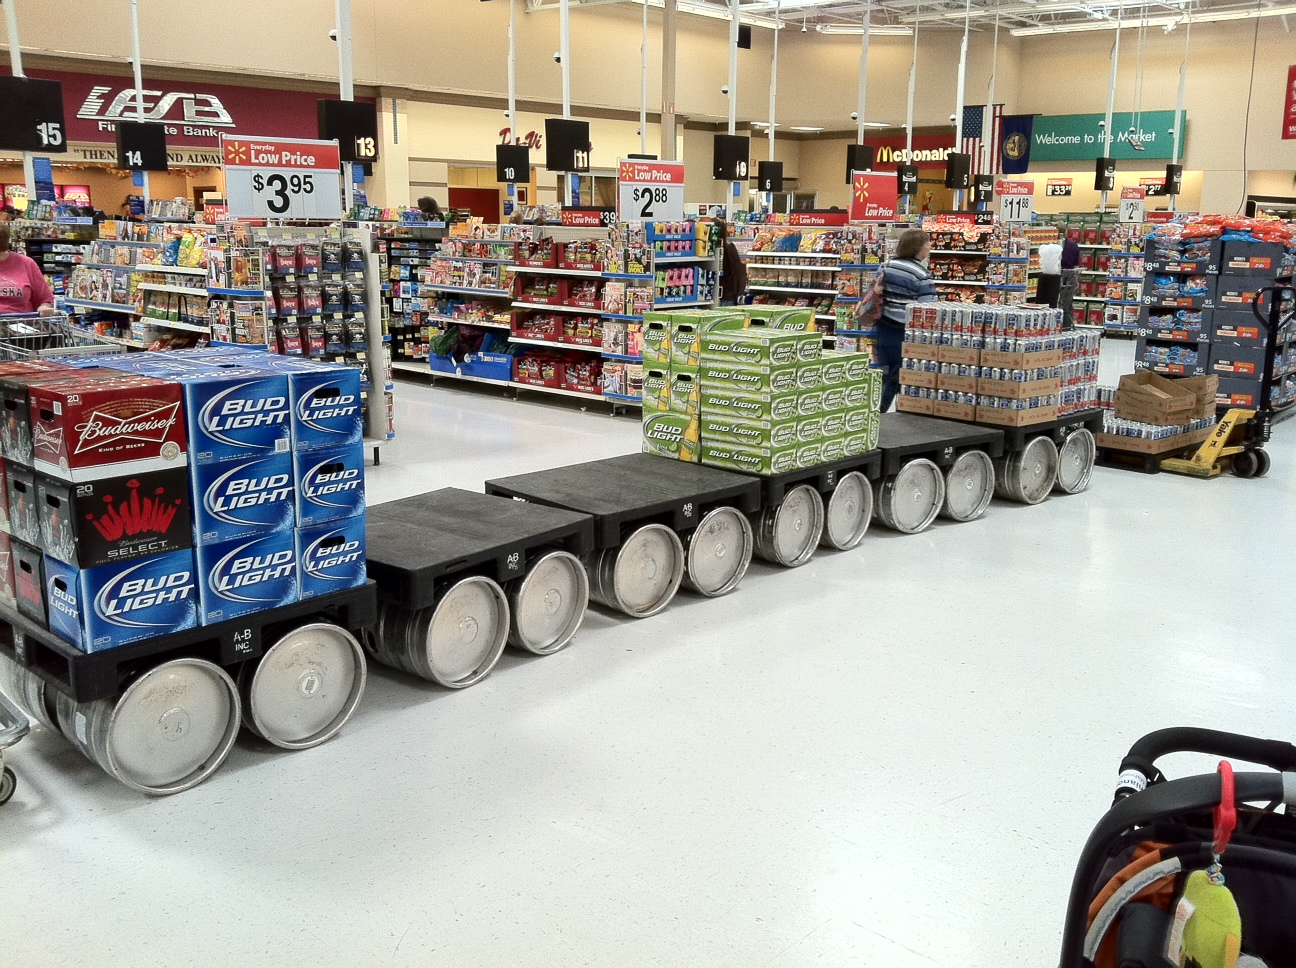 Walmart-Keg-Train-Beer-Marketing